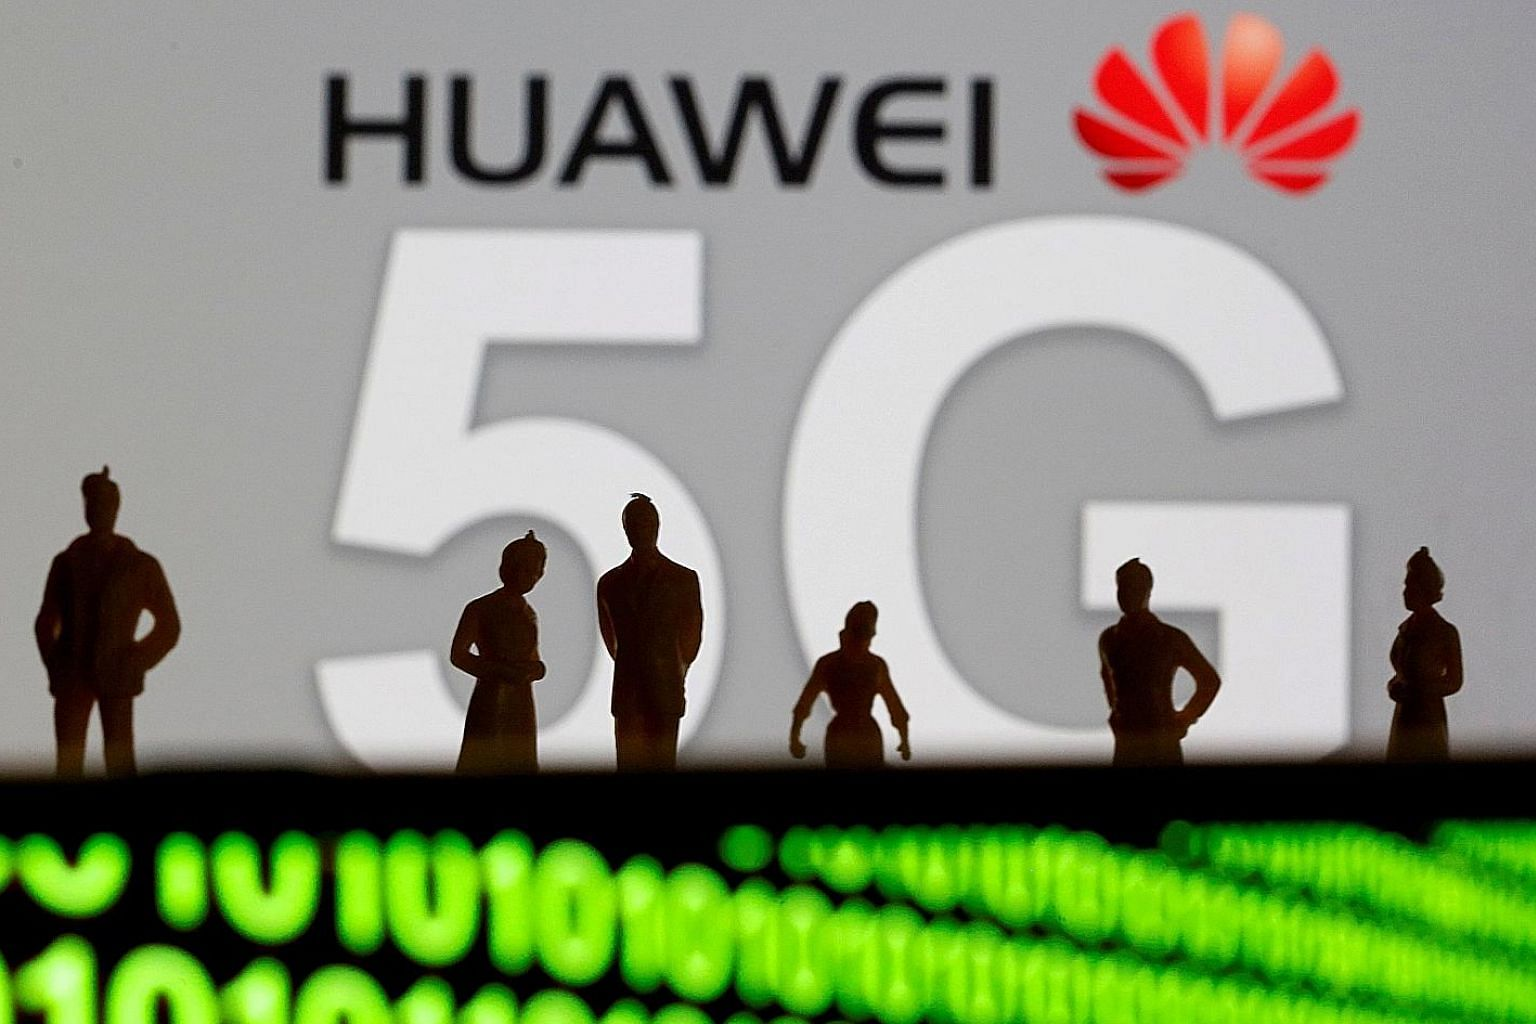 The Daily Telegraph newspaper reported that Britain's National Security Council, chaired by Prime Minister Theresa May, has agreed to allow Huawei access to non-core parts of 5G mobile infrastructure, despite ministers' concerns.